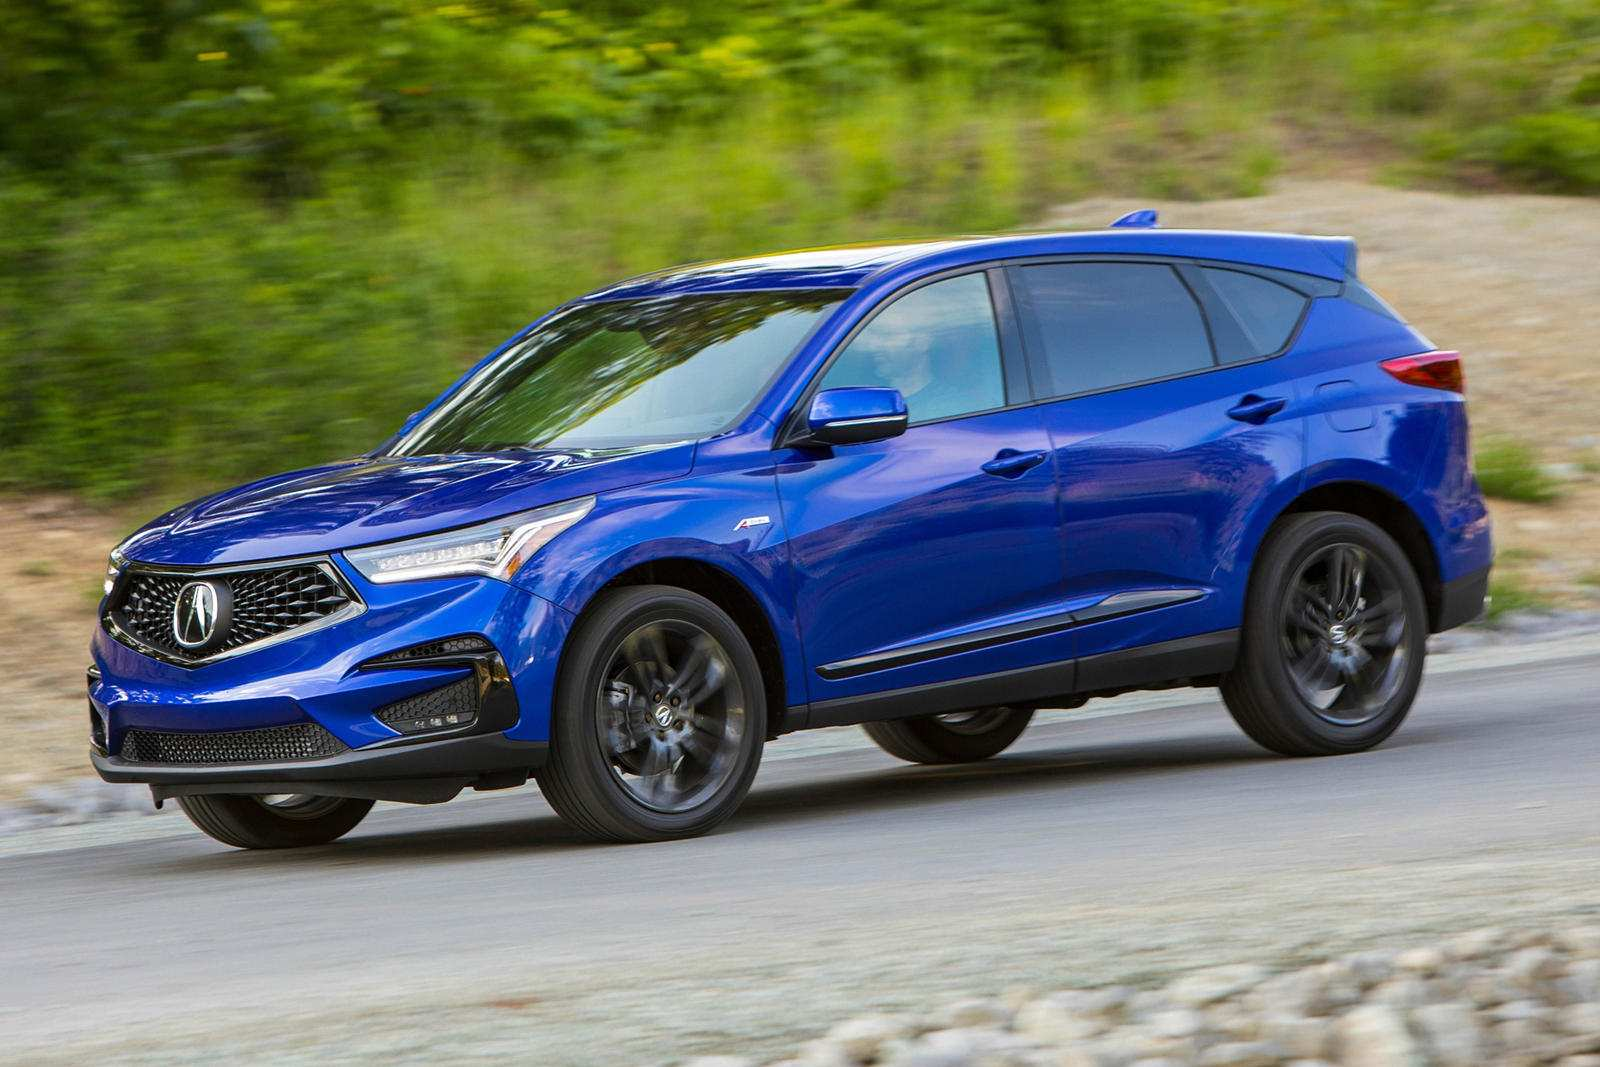 61 Best Review When Will Acura Rdx 2020 Be Available Release Date for When Will Acura Rdx 2020 Be Available